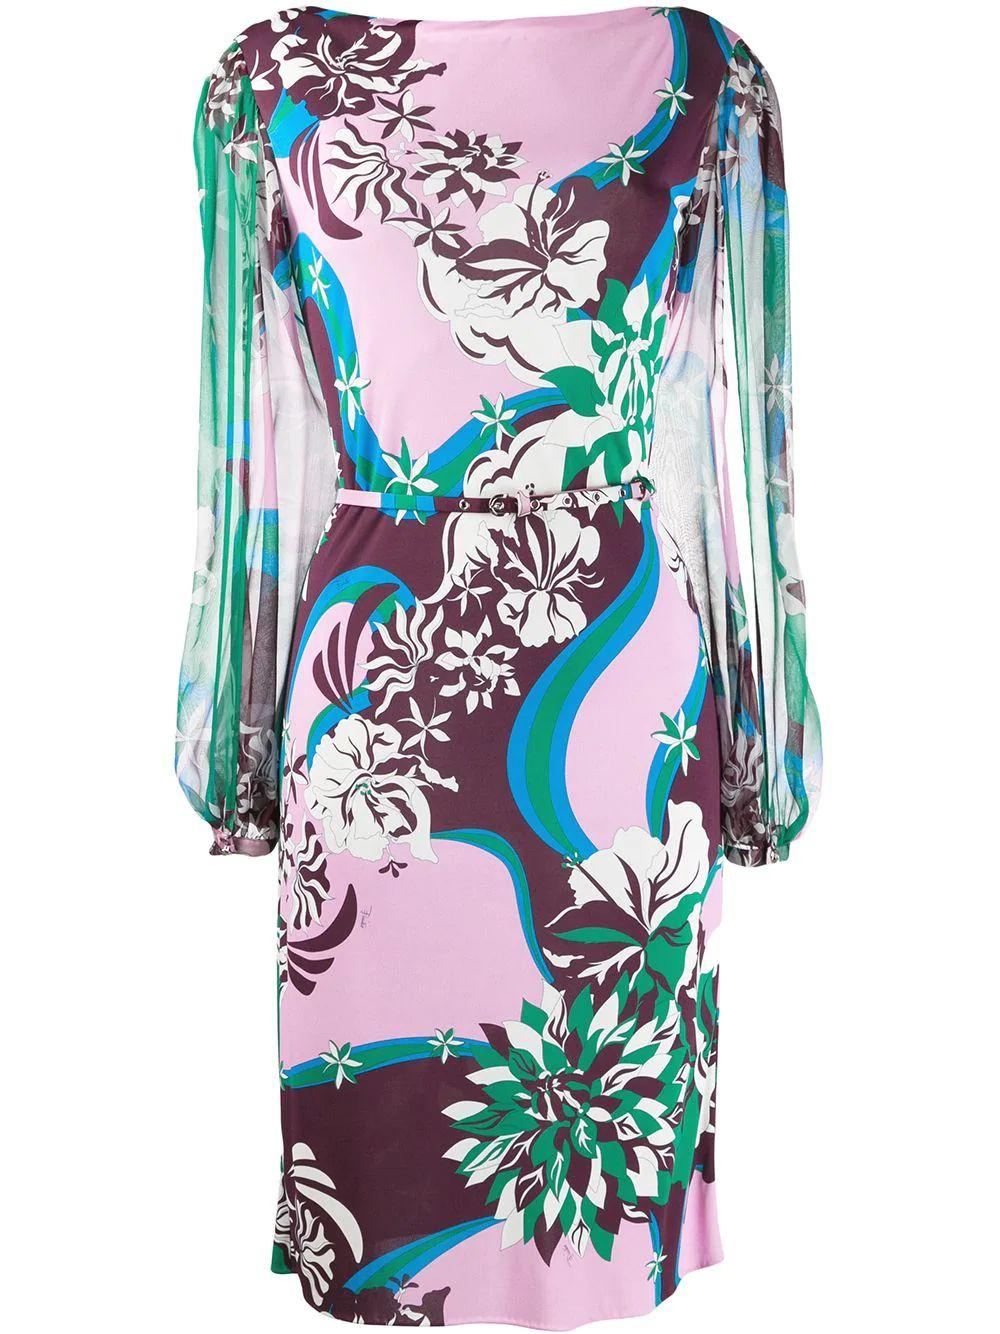 Long Sleeve Printed Dress With Chiffon Sleeve